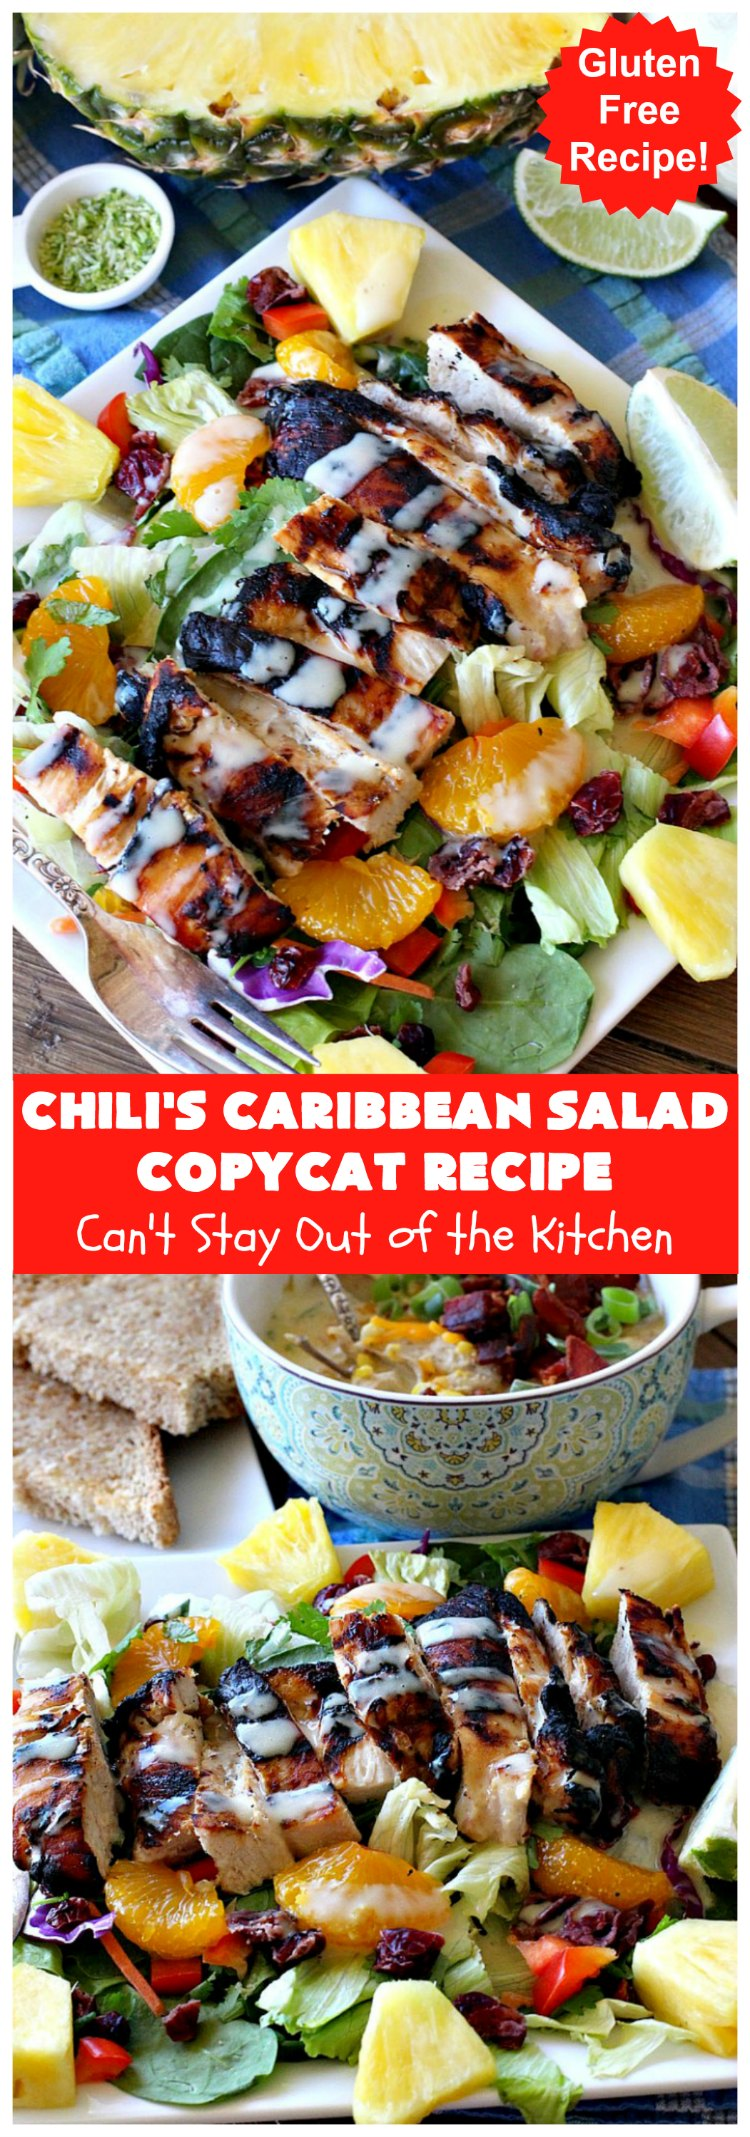 Chili's Caribbean Salad Copycat Recipe with Honey-Lime Dressing | Can't Stay Out of the Kitchen | this is a spectacular #CopyCat #recipe of this favorite #salad. The #SaladDressing is also fantastic. #GlutenFree #chicken #pineapple #MandarinOranges #HoneyLimeDressing #ChilisCaribbeanSalad #ChilisCaribbeanSaladCopycatRecipeWithHoneyLimeDressing